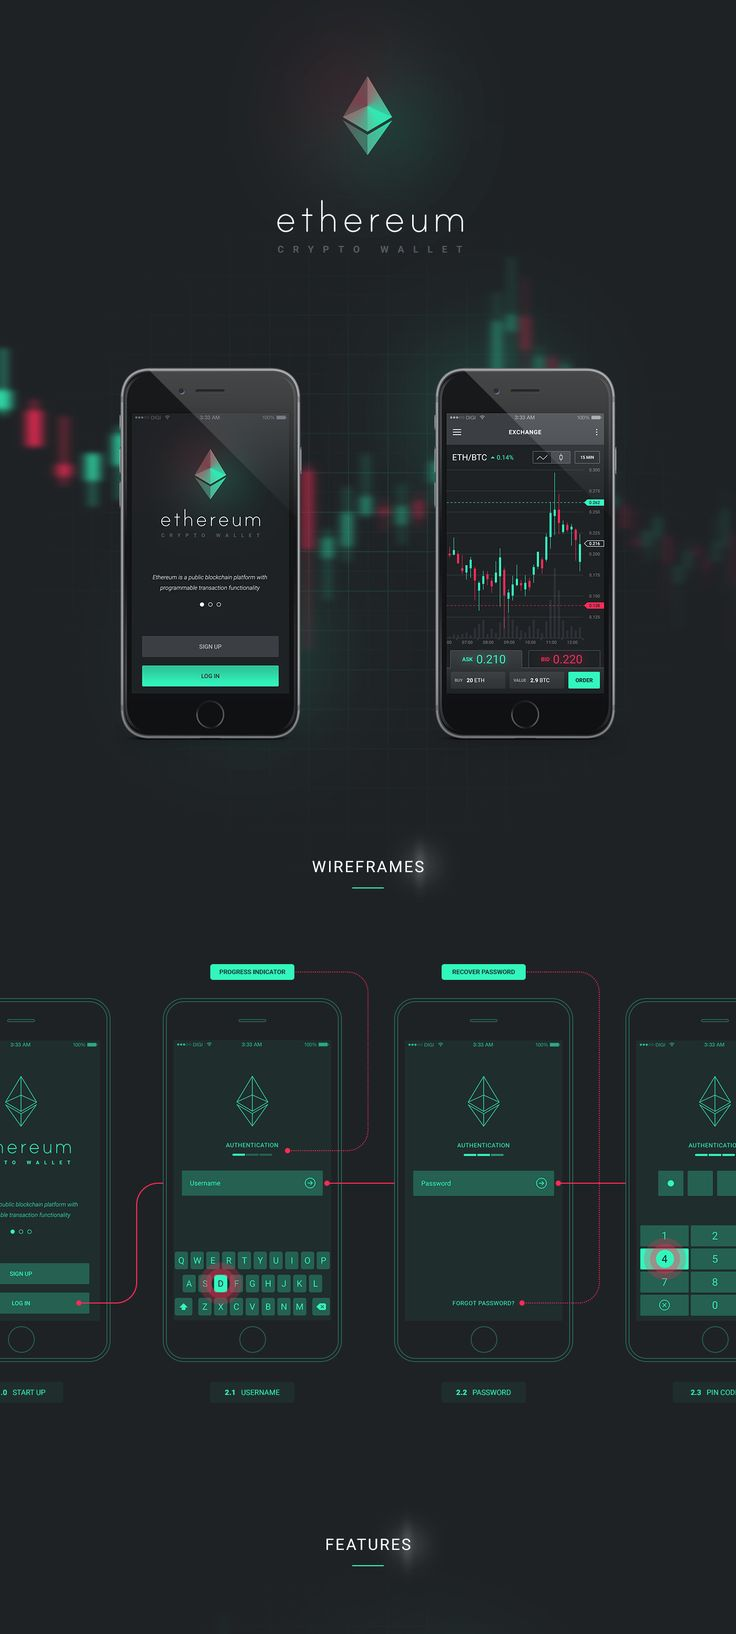 Mobile app and dashboard UI design for bitcoin, ethereum, forex and other exchange. Mockup of iphone and macbook showcase design. Mobile app screens available as free psd photoshop kit for download.